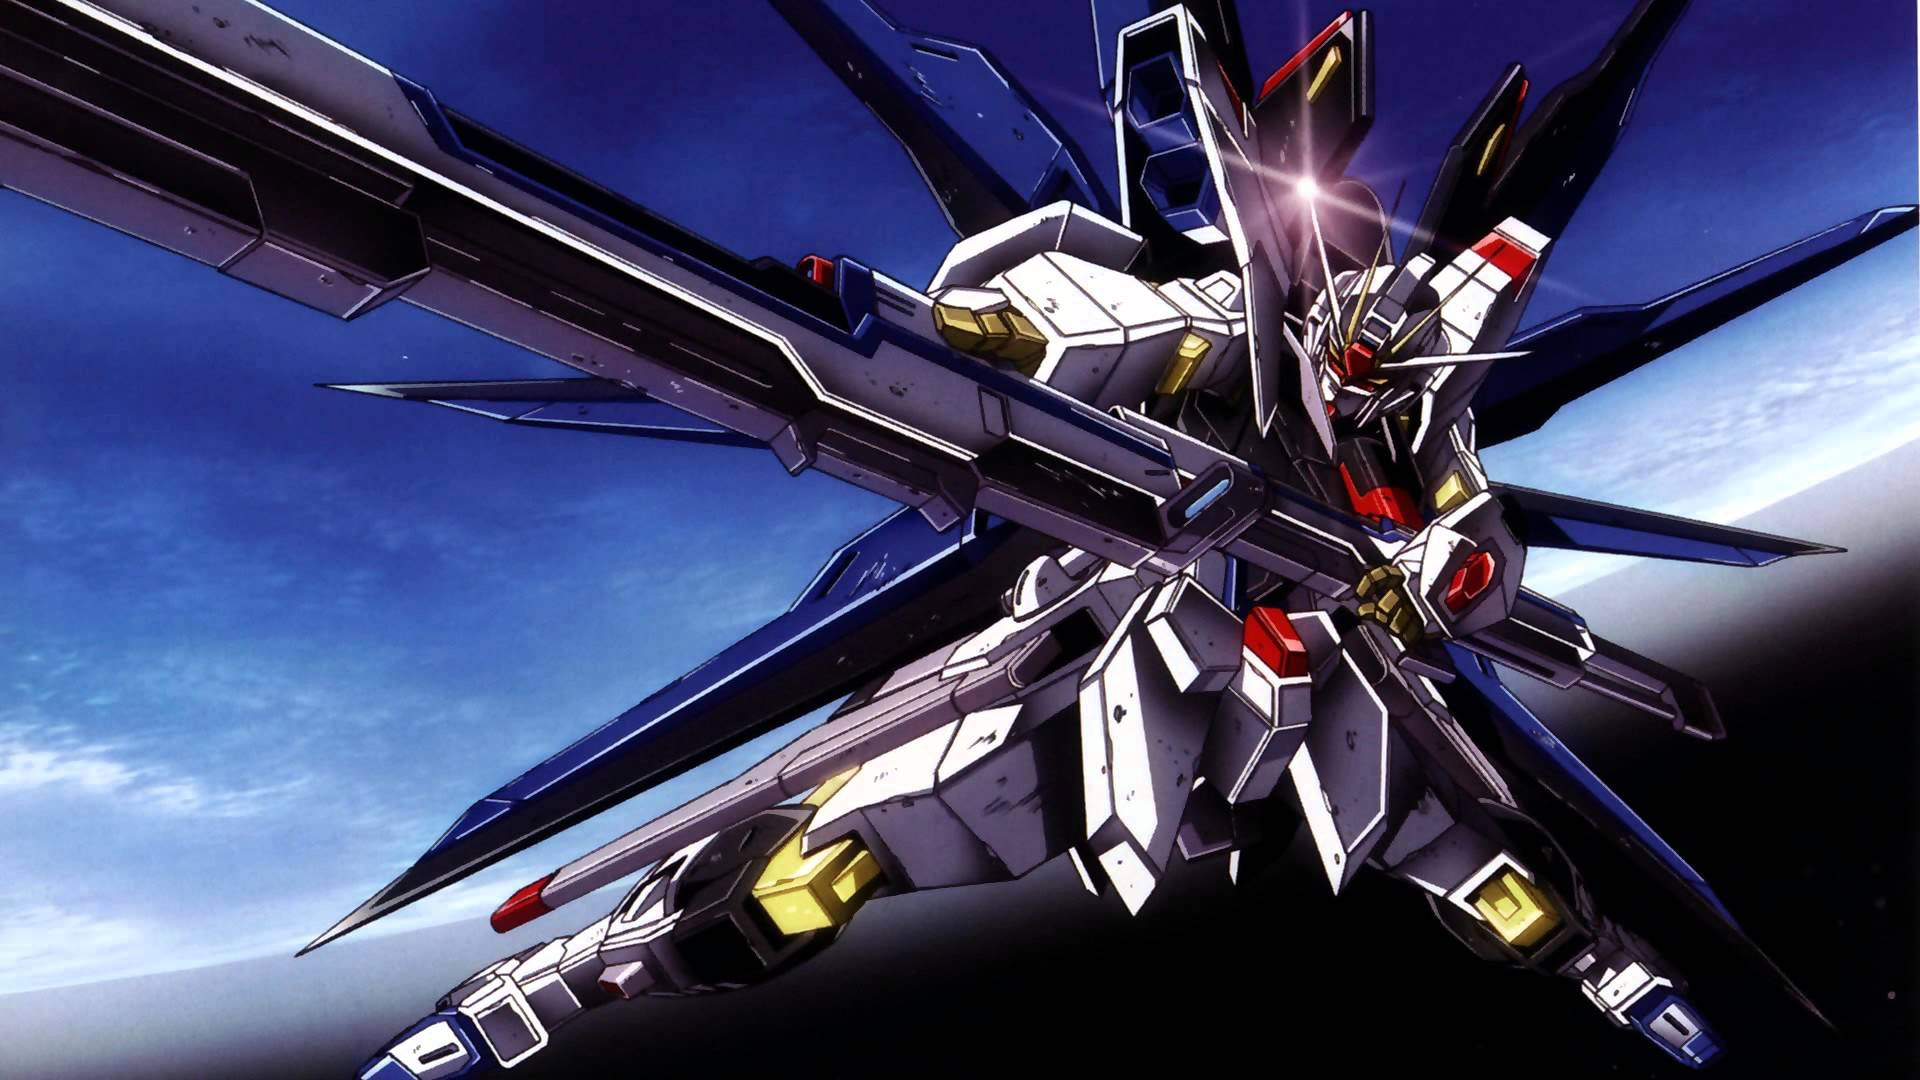 1920x1080 - Mobile Suit Gundam Seed Destiny Wallpapers 8